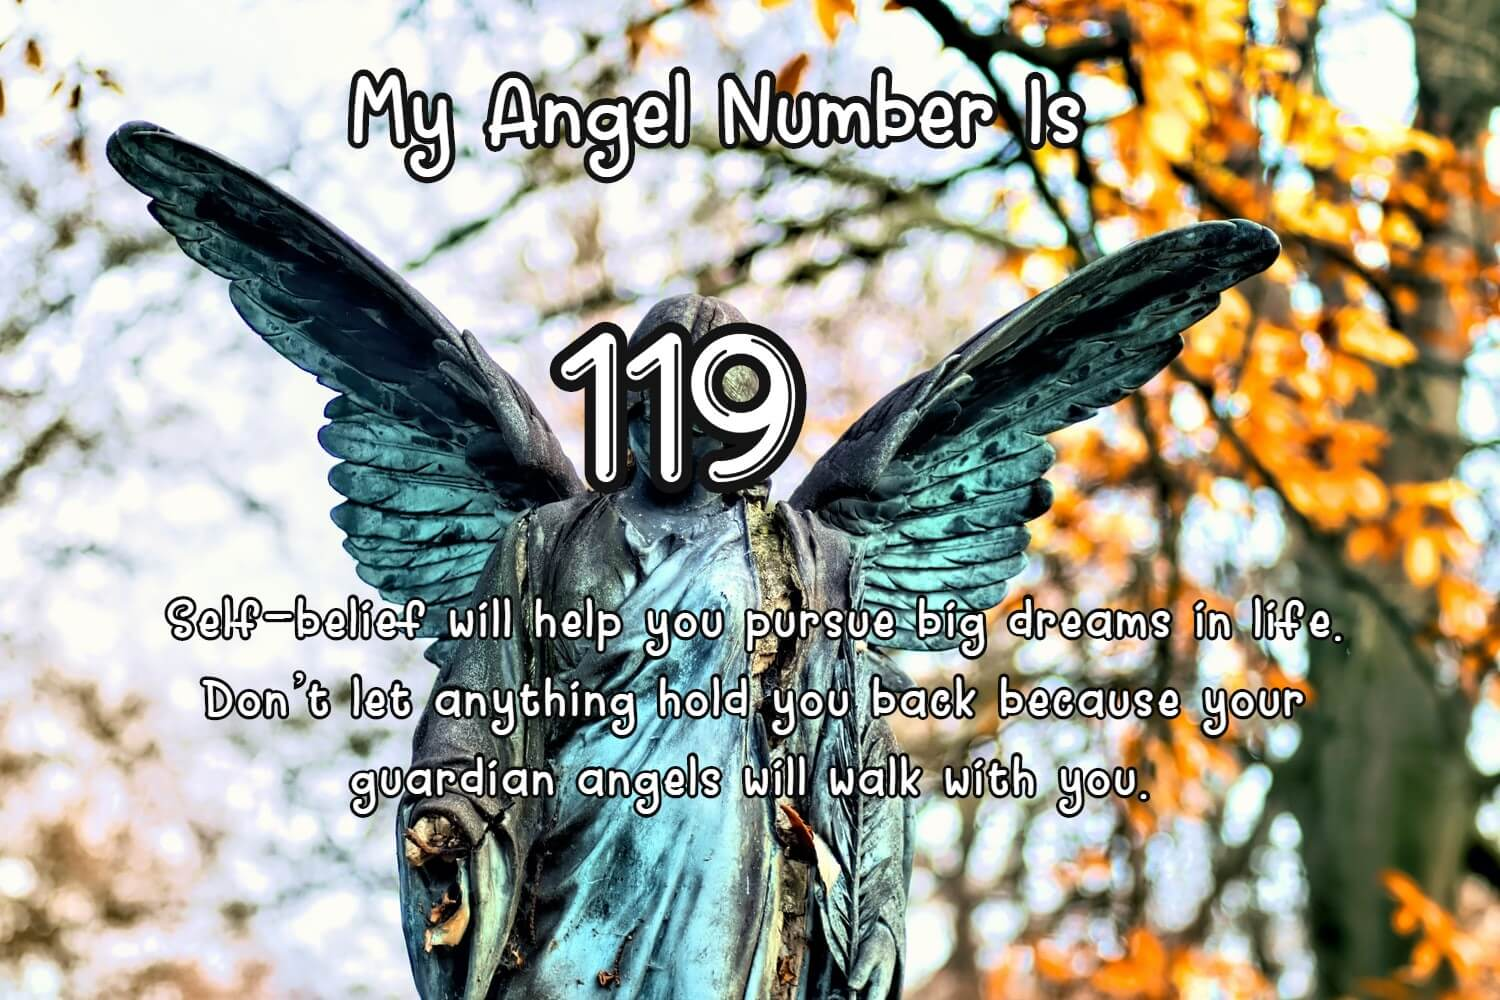 Angel Number 119 And Its Meaning